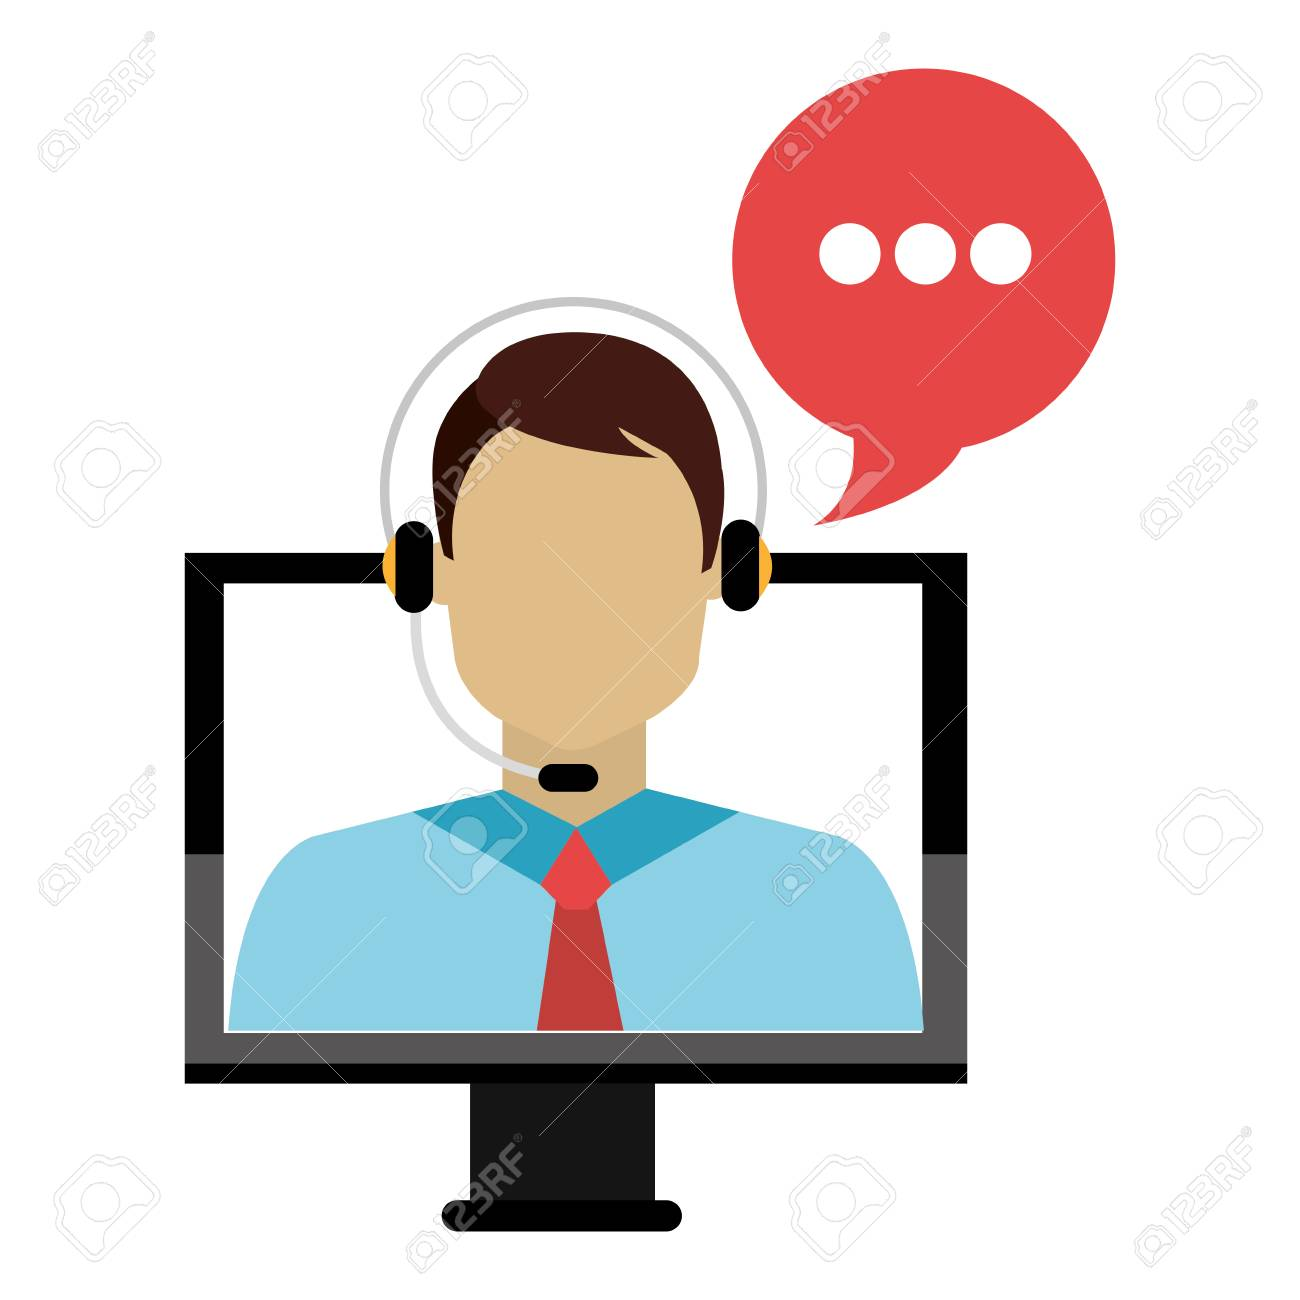 Call Center Agent With Headset And Computer Vector Illustration